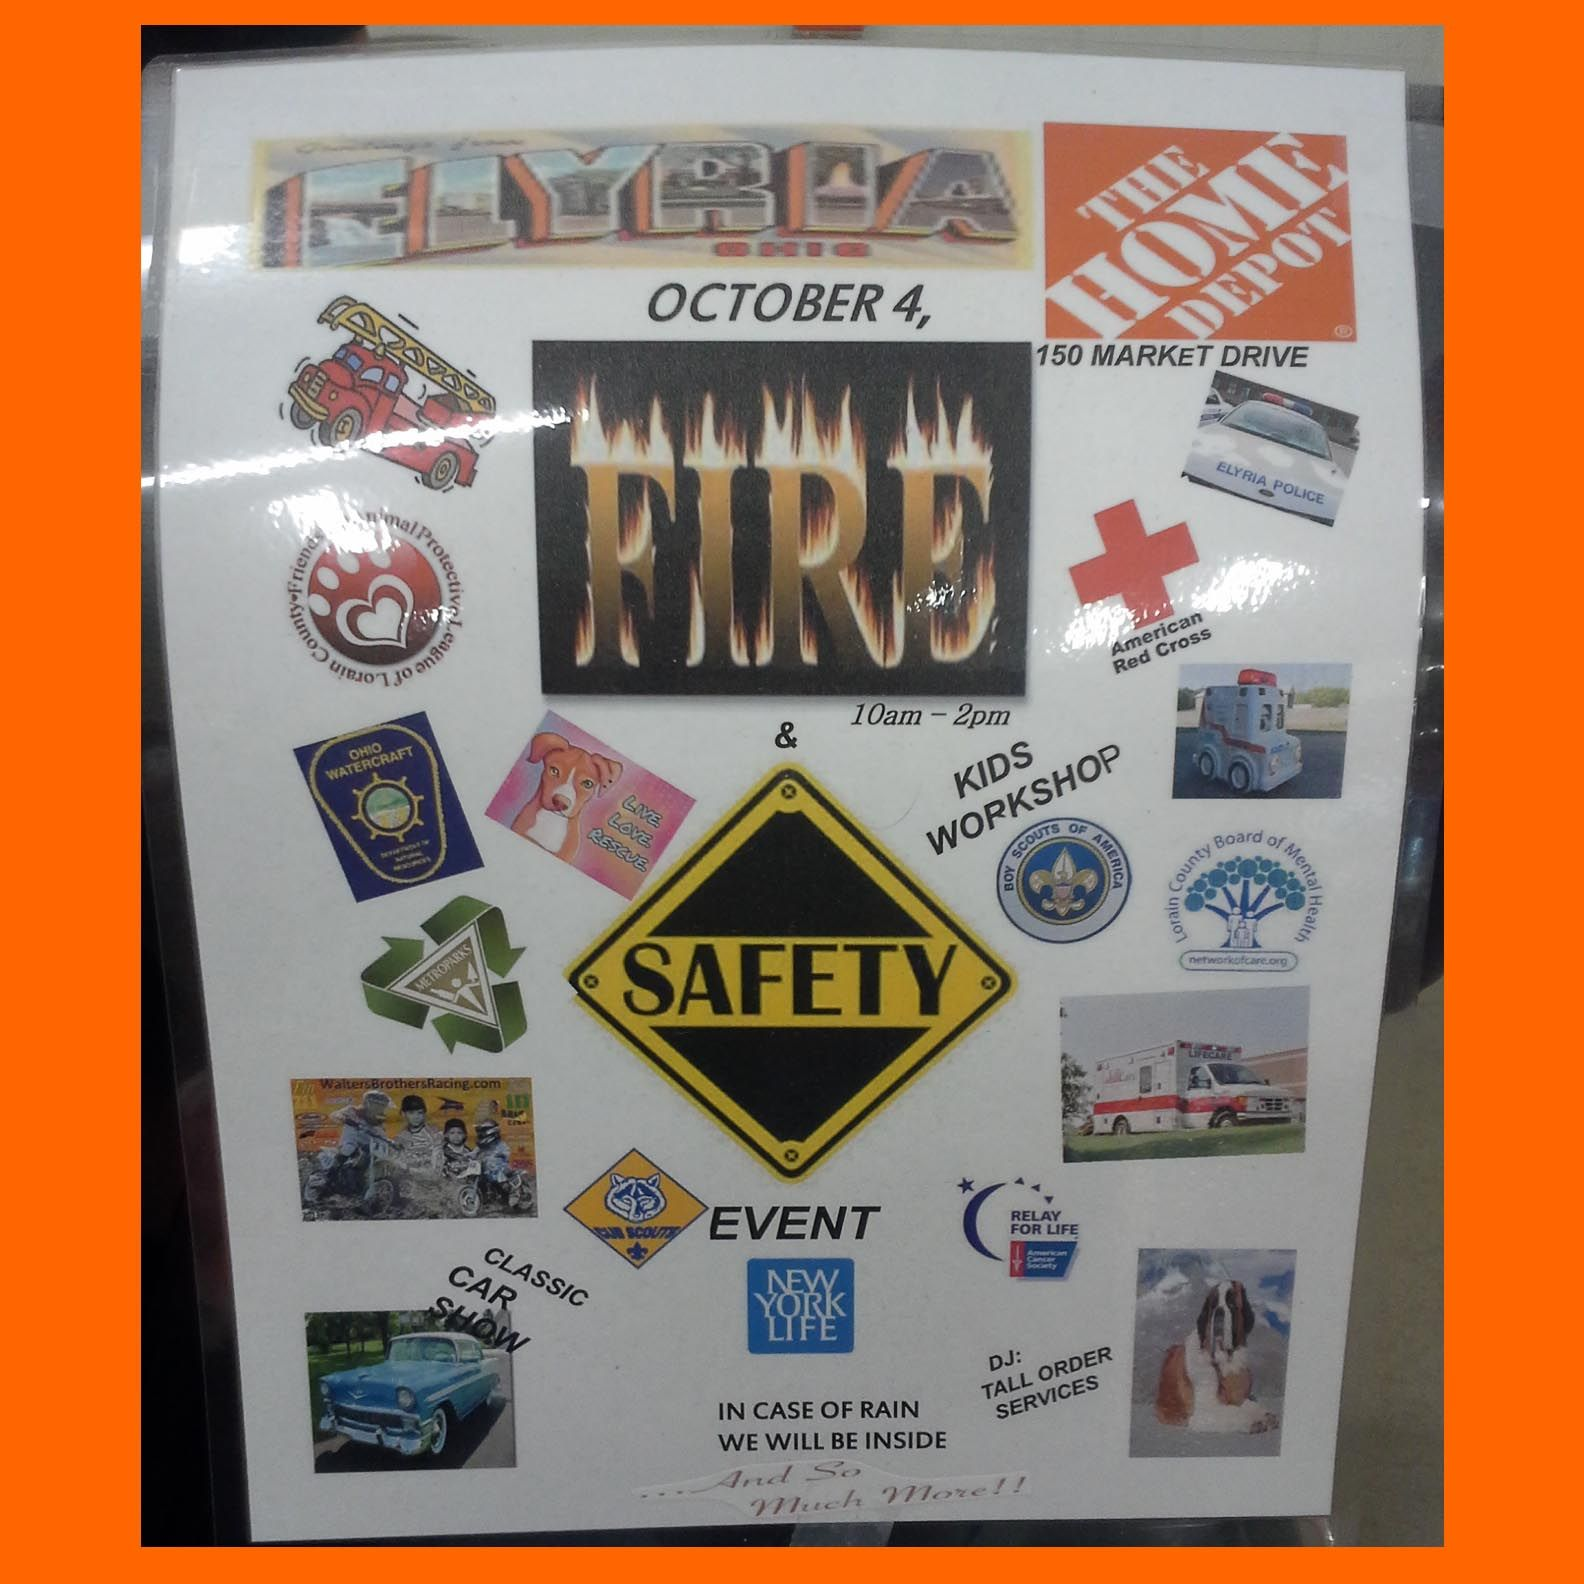 Went to the Elyria Home Depot and found their Safety Event